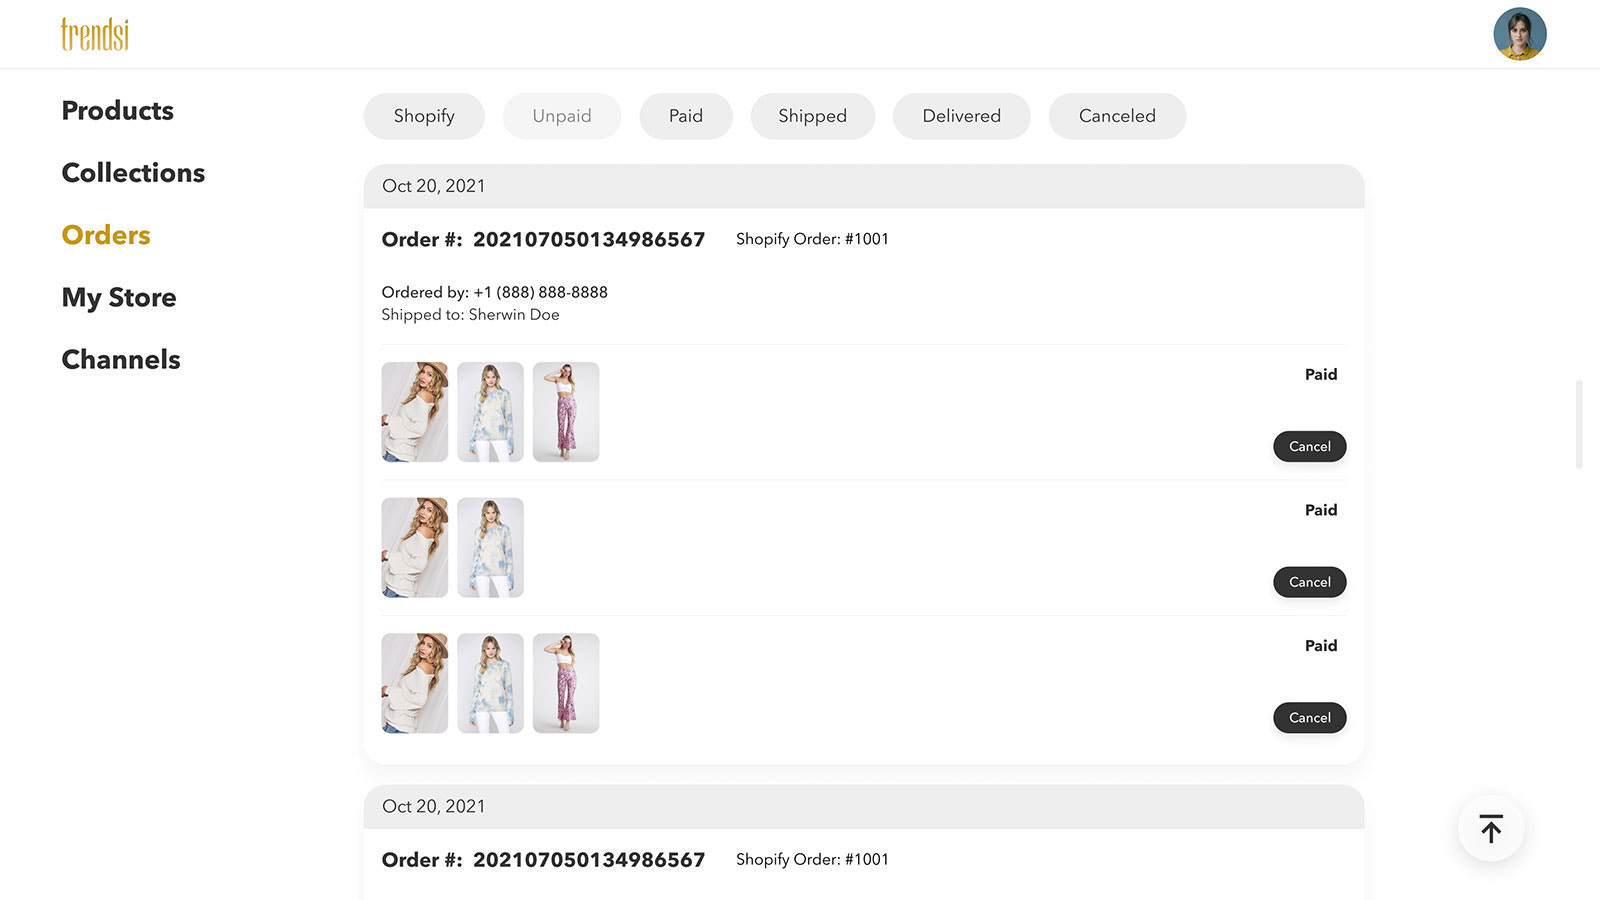 Manage orders from different channels on Trendsi